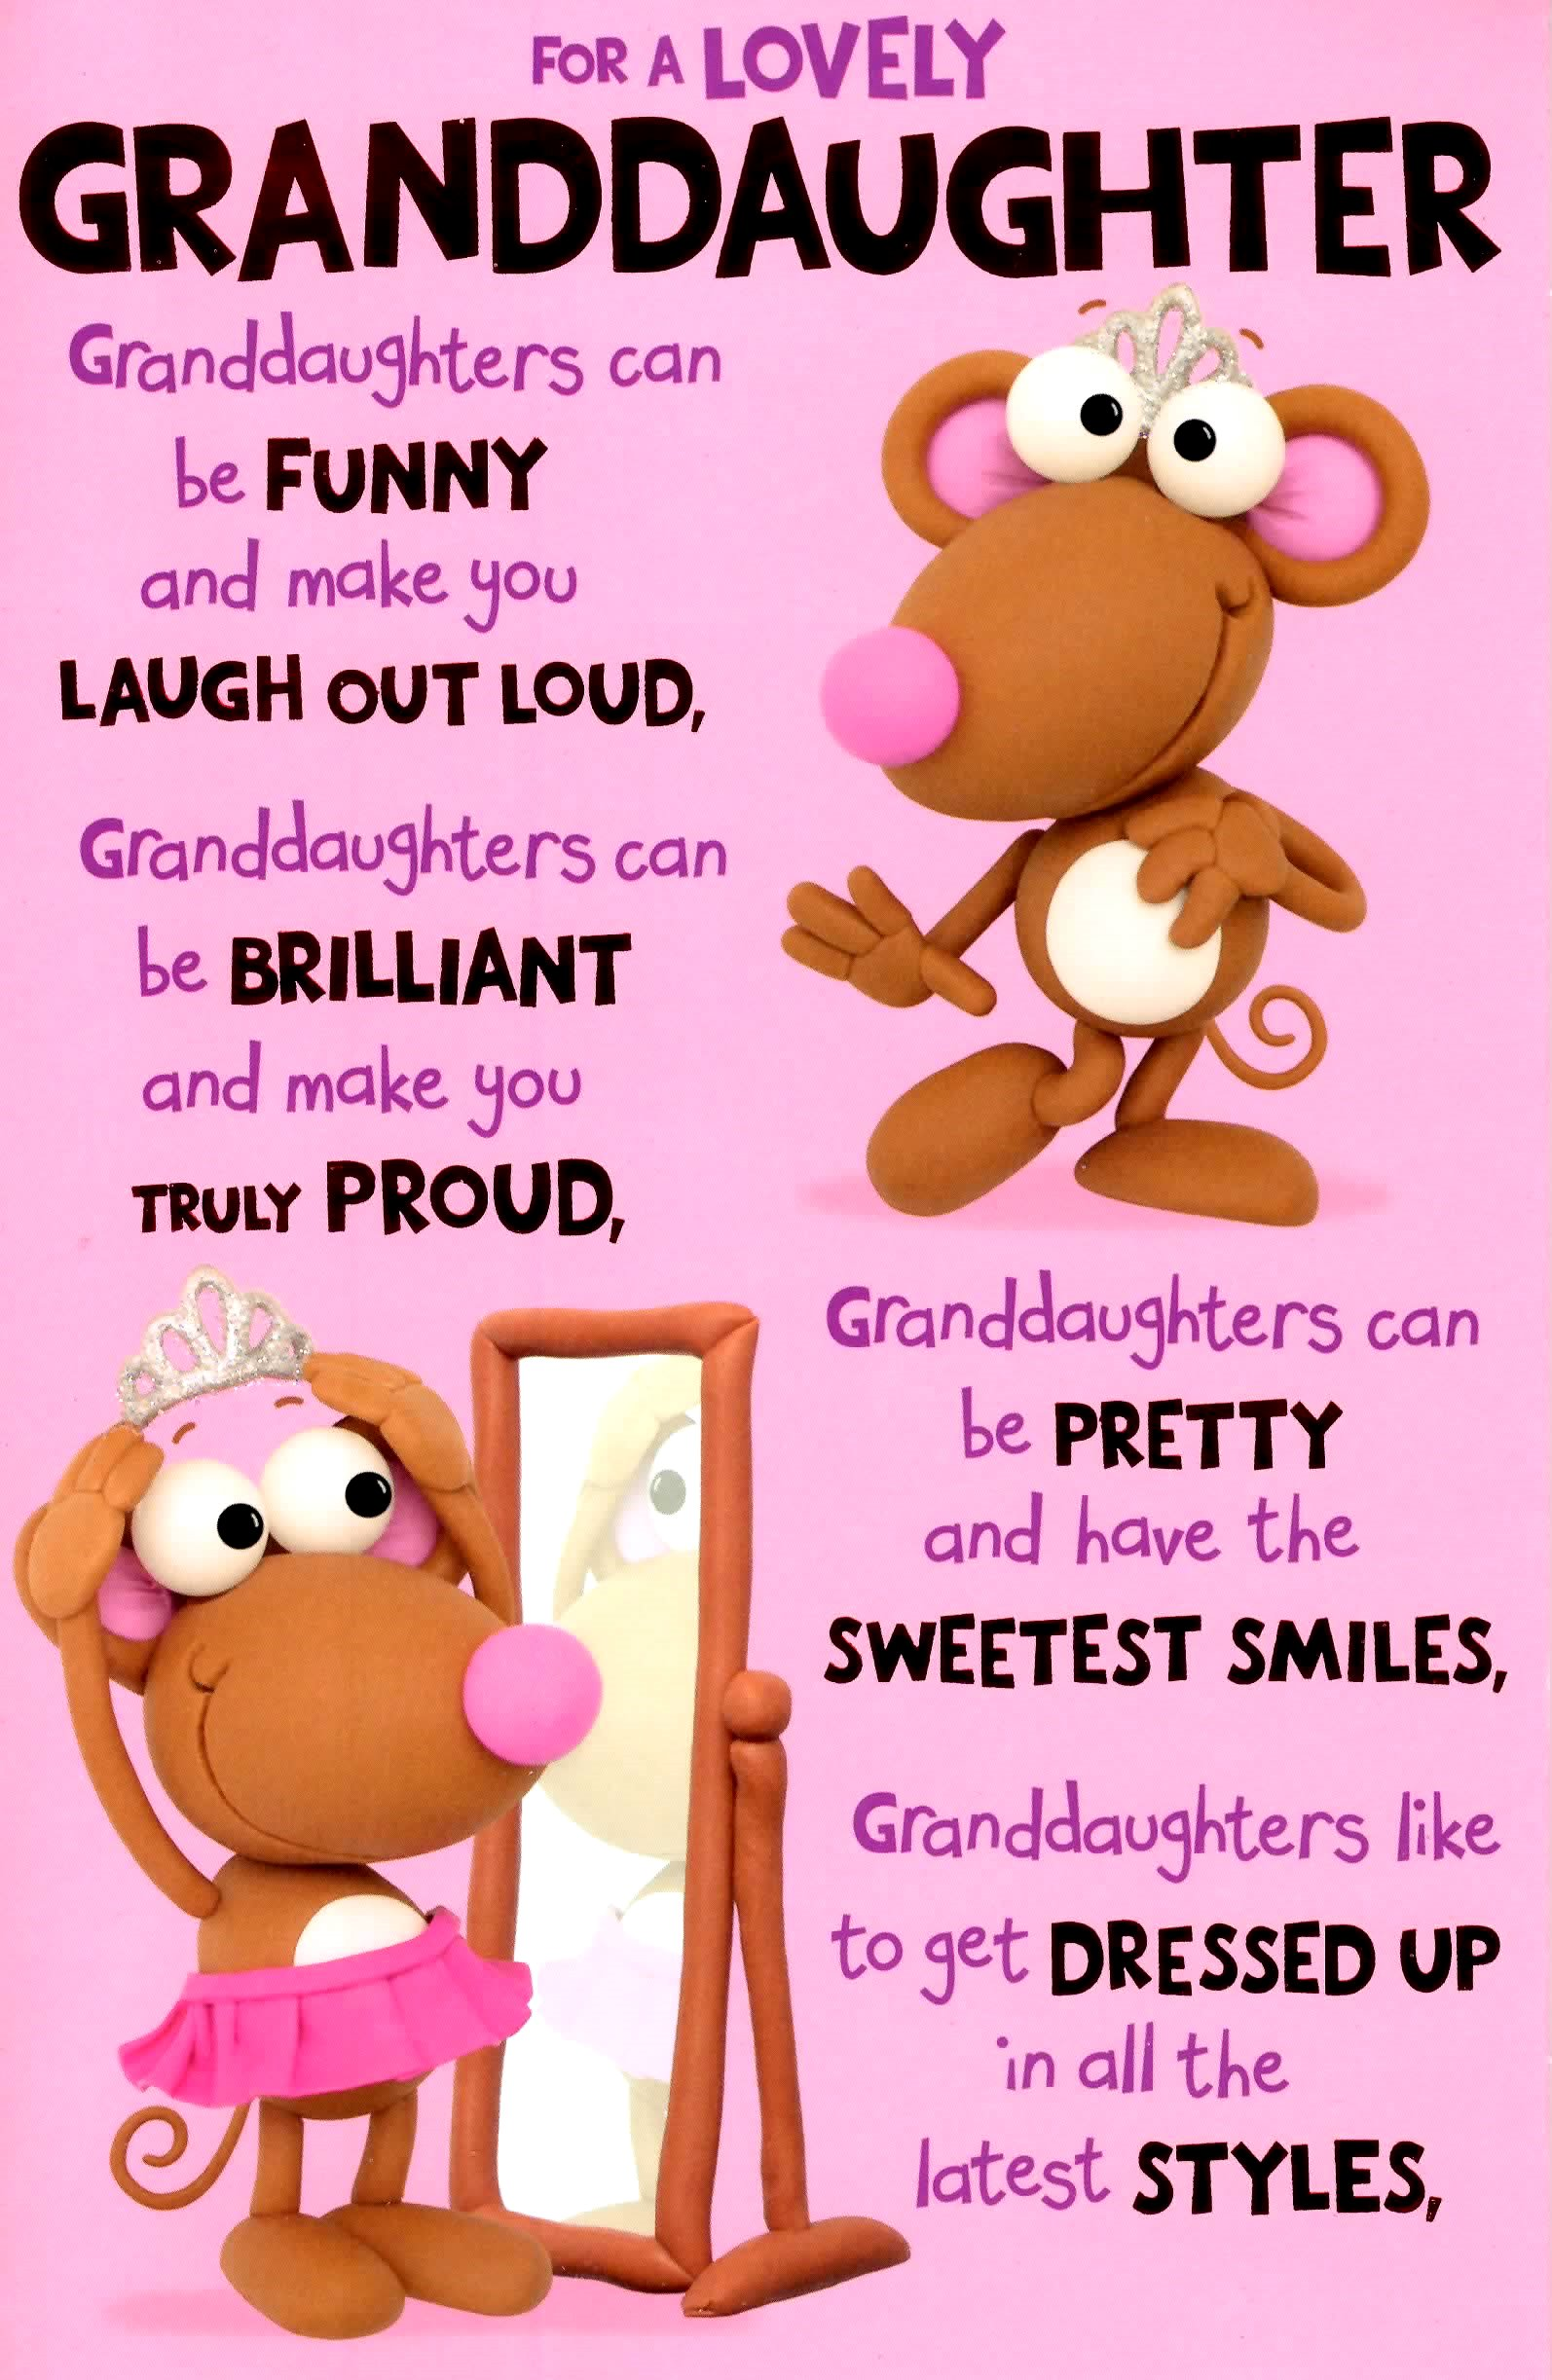 Cute Wonderful Granddaughter Birthday Greeting Card Cards Love Kates